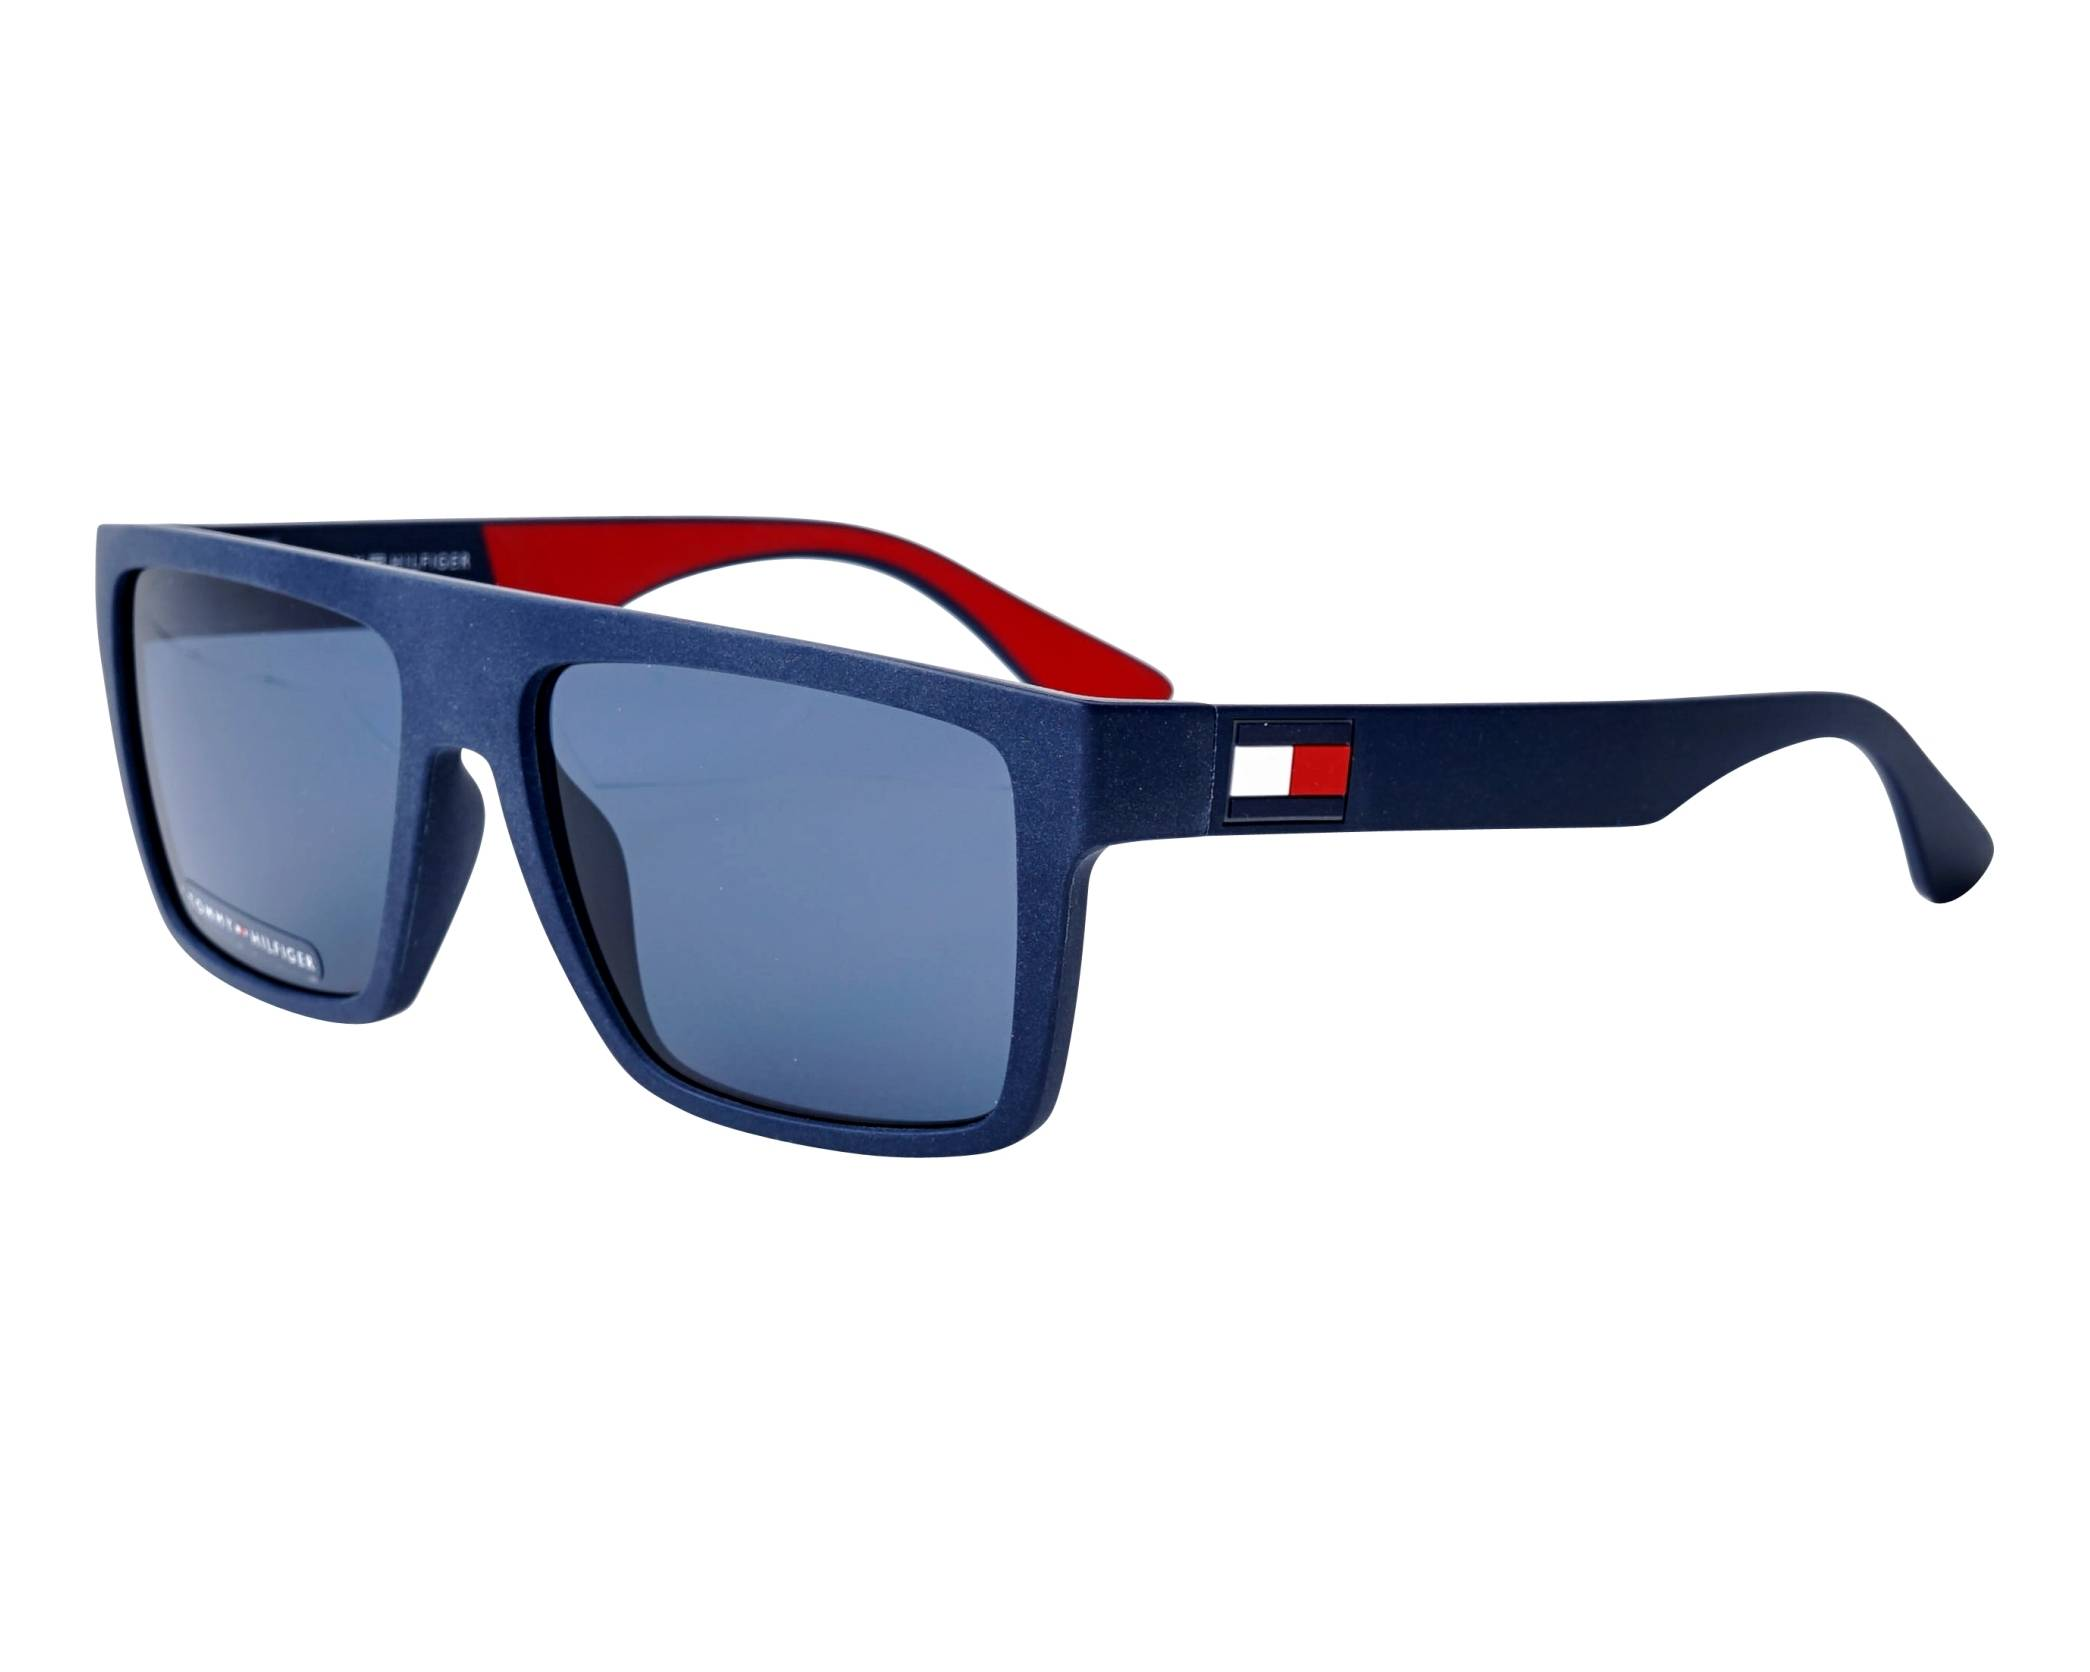 03603ed021eb Sunglasses Tommy Hilfiger TH-1605-S IPQKU 56-16 Blue Red profile view